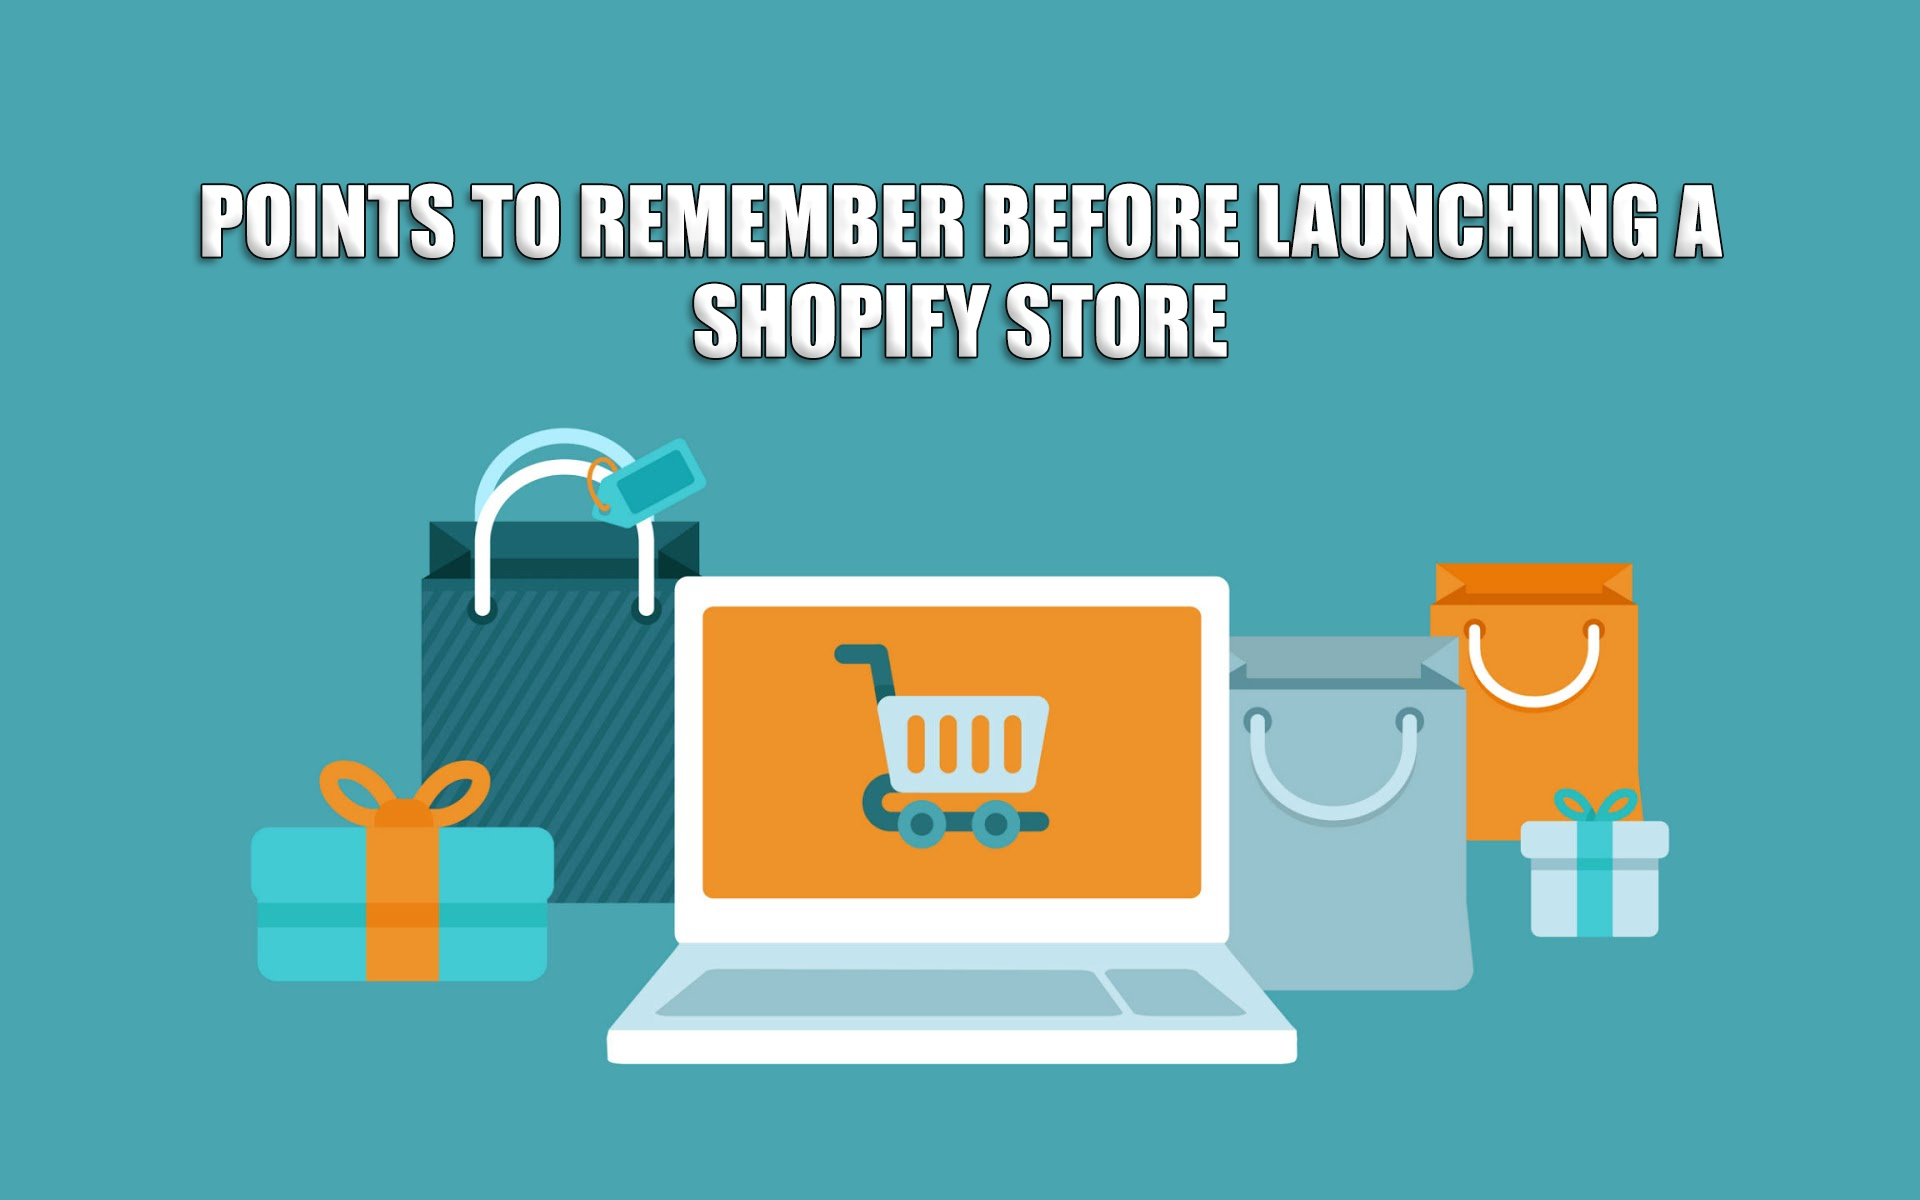 Points to Remember Before Launching a Shopify Store